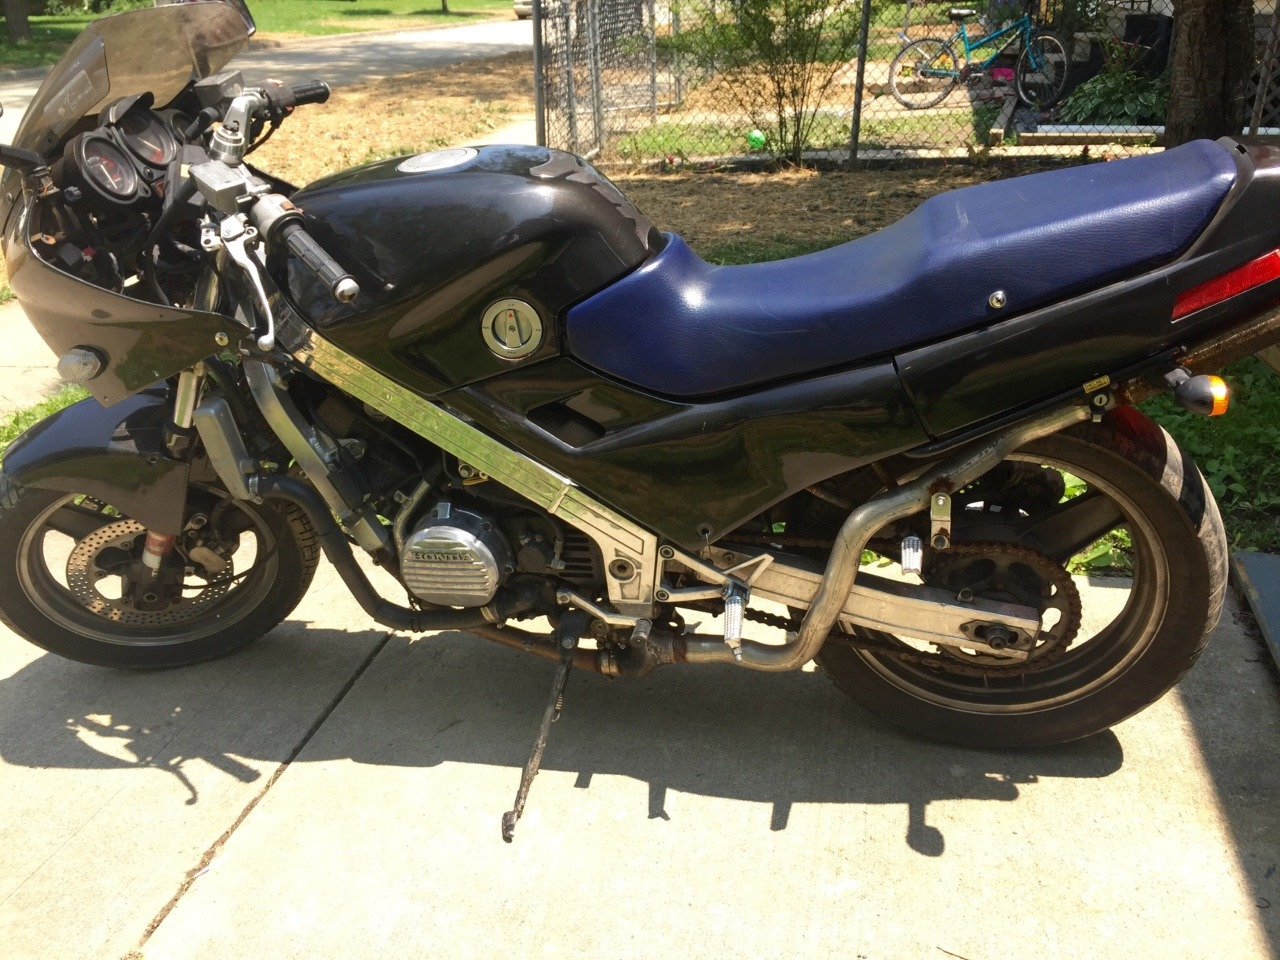 Page 26 Cycle Trader Used Honda Motorcycles Sale 1986 Shadow 1100 Parts Interceptor Vfr750